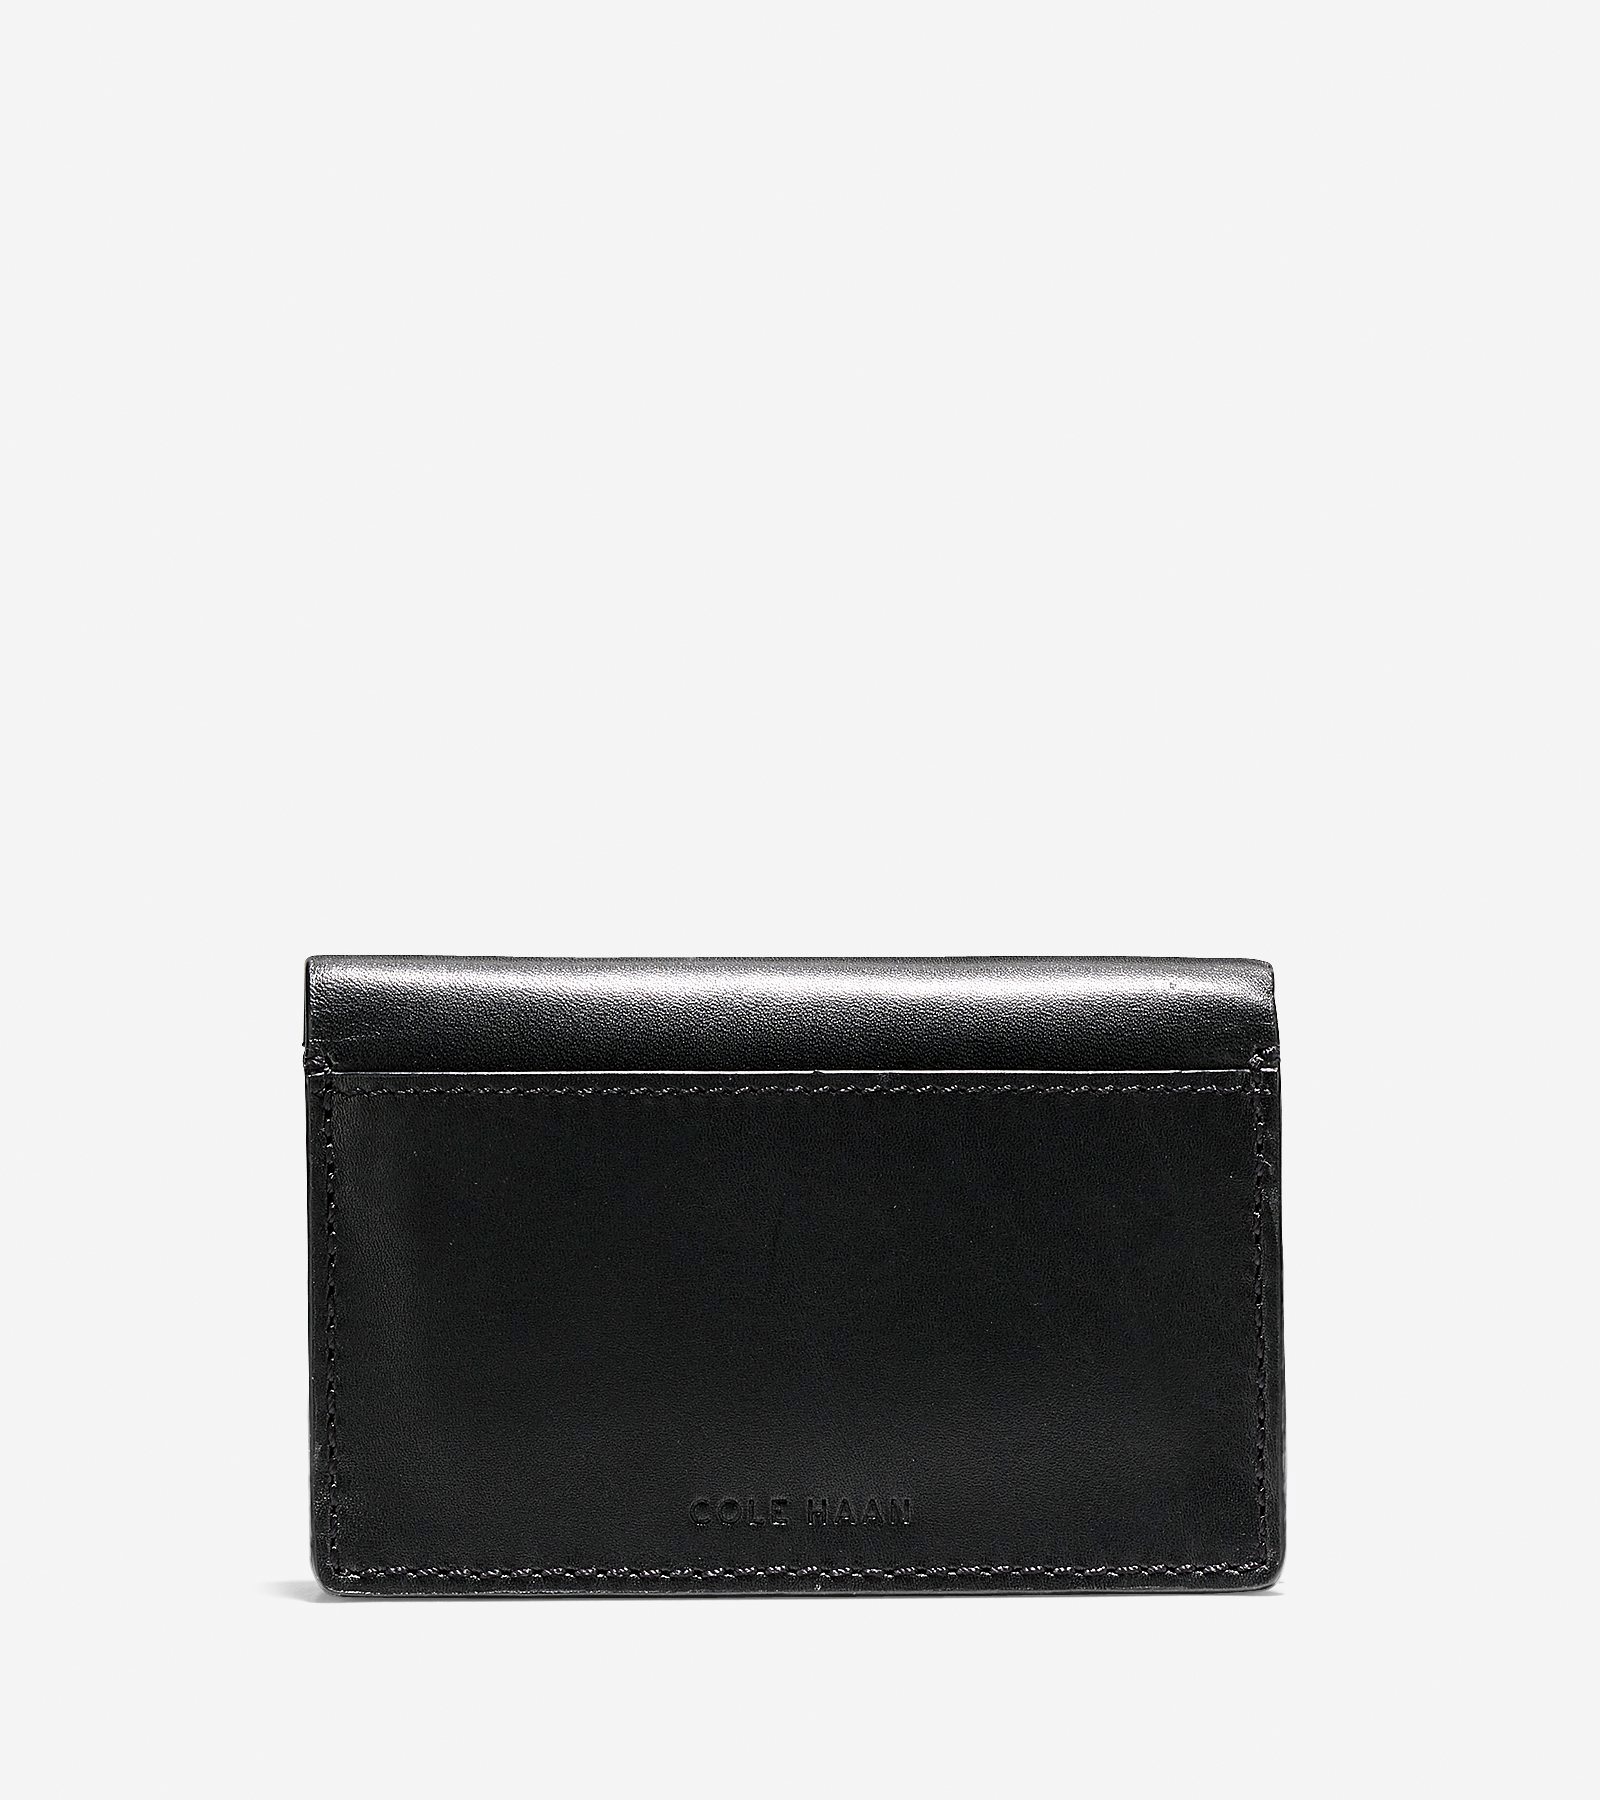 new styles a9cdf dd9cb Men's Washington Grand Business Card Case in Black | Cole Haan